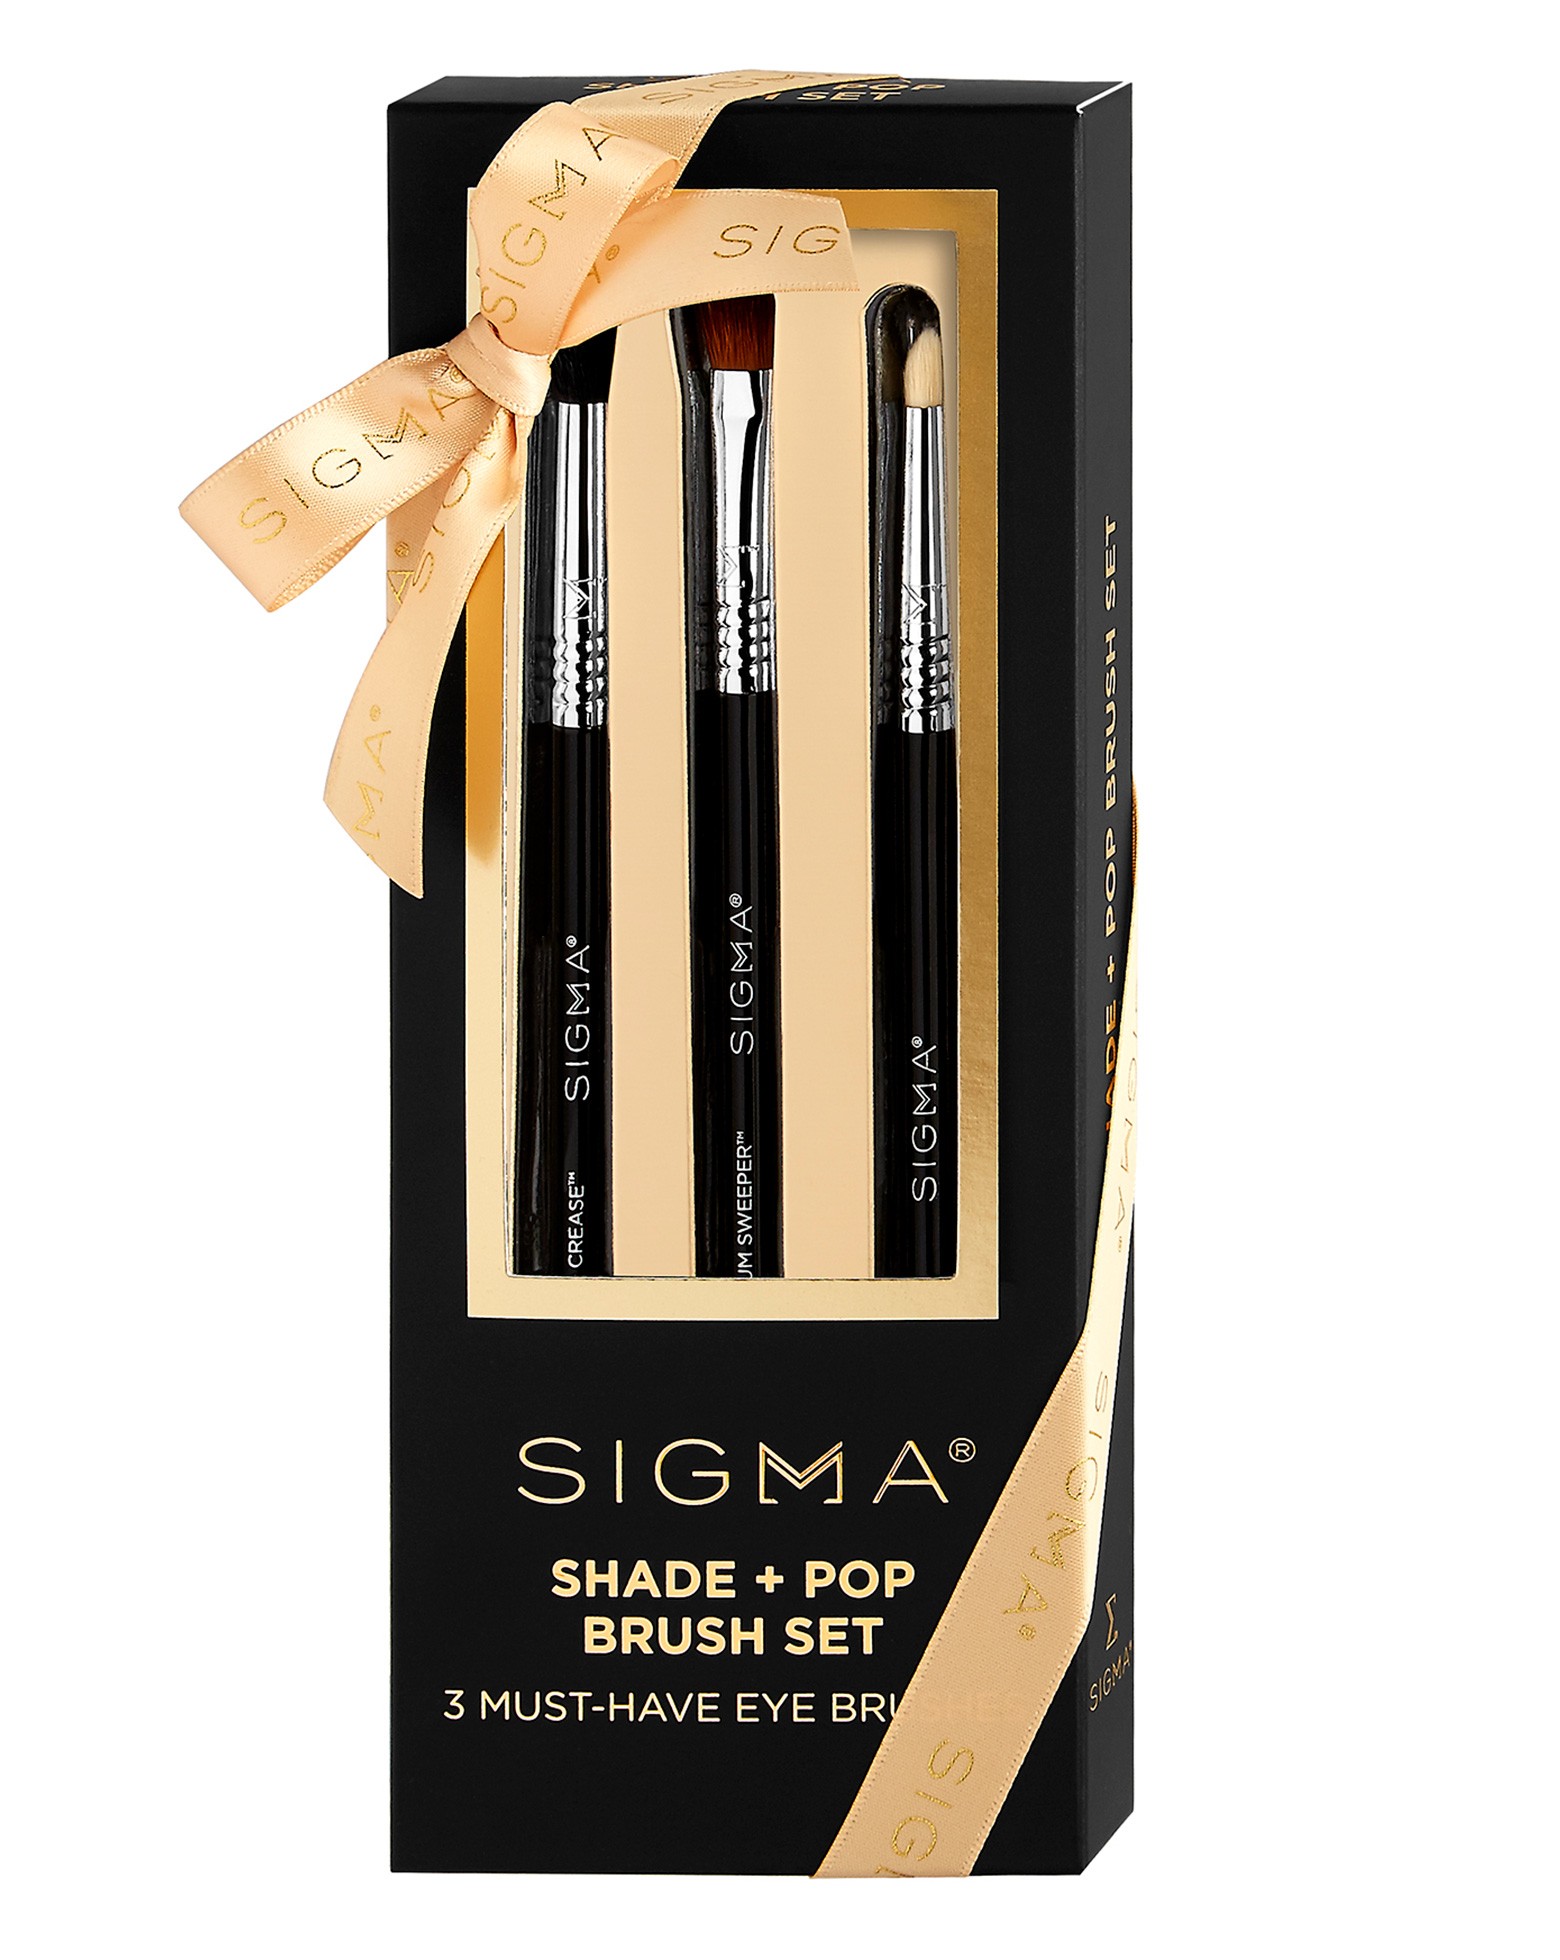 images 7 Gorgeous Sigma Beauty Gifts for Christmas 2015